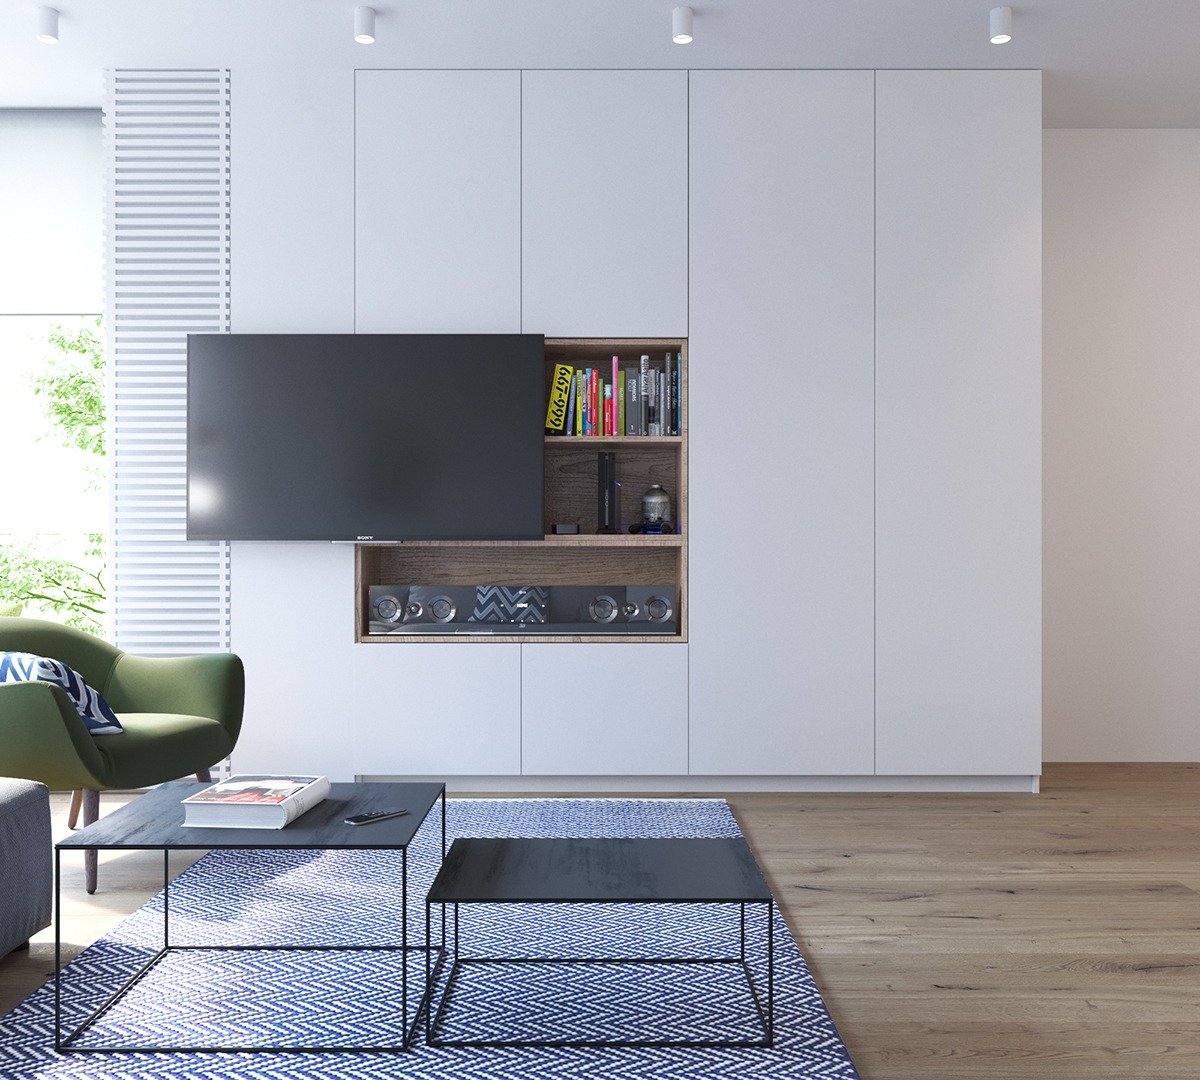 Wall Mount Tv Wooden Shelves Bult In - 2 stunningly beautiful homes decorated in modern scandinavian style